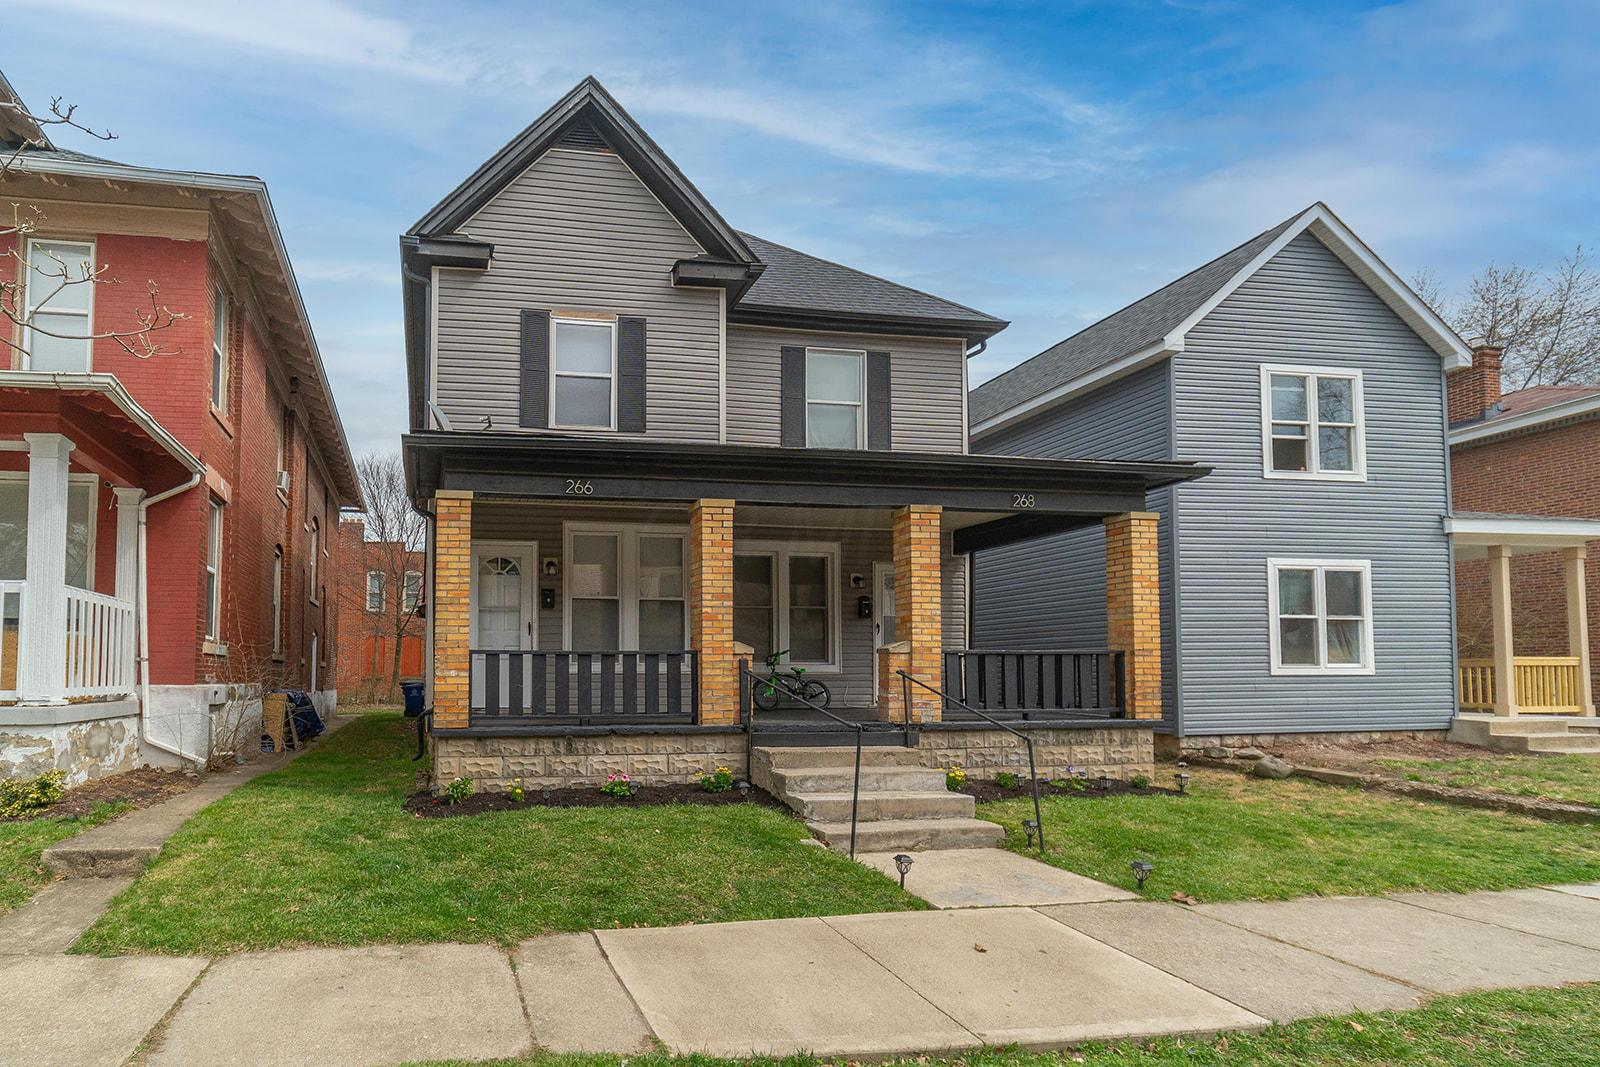 Property for sale at 266-268 Miller Avenue, Columbus,  Ohio 43205